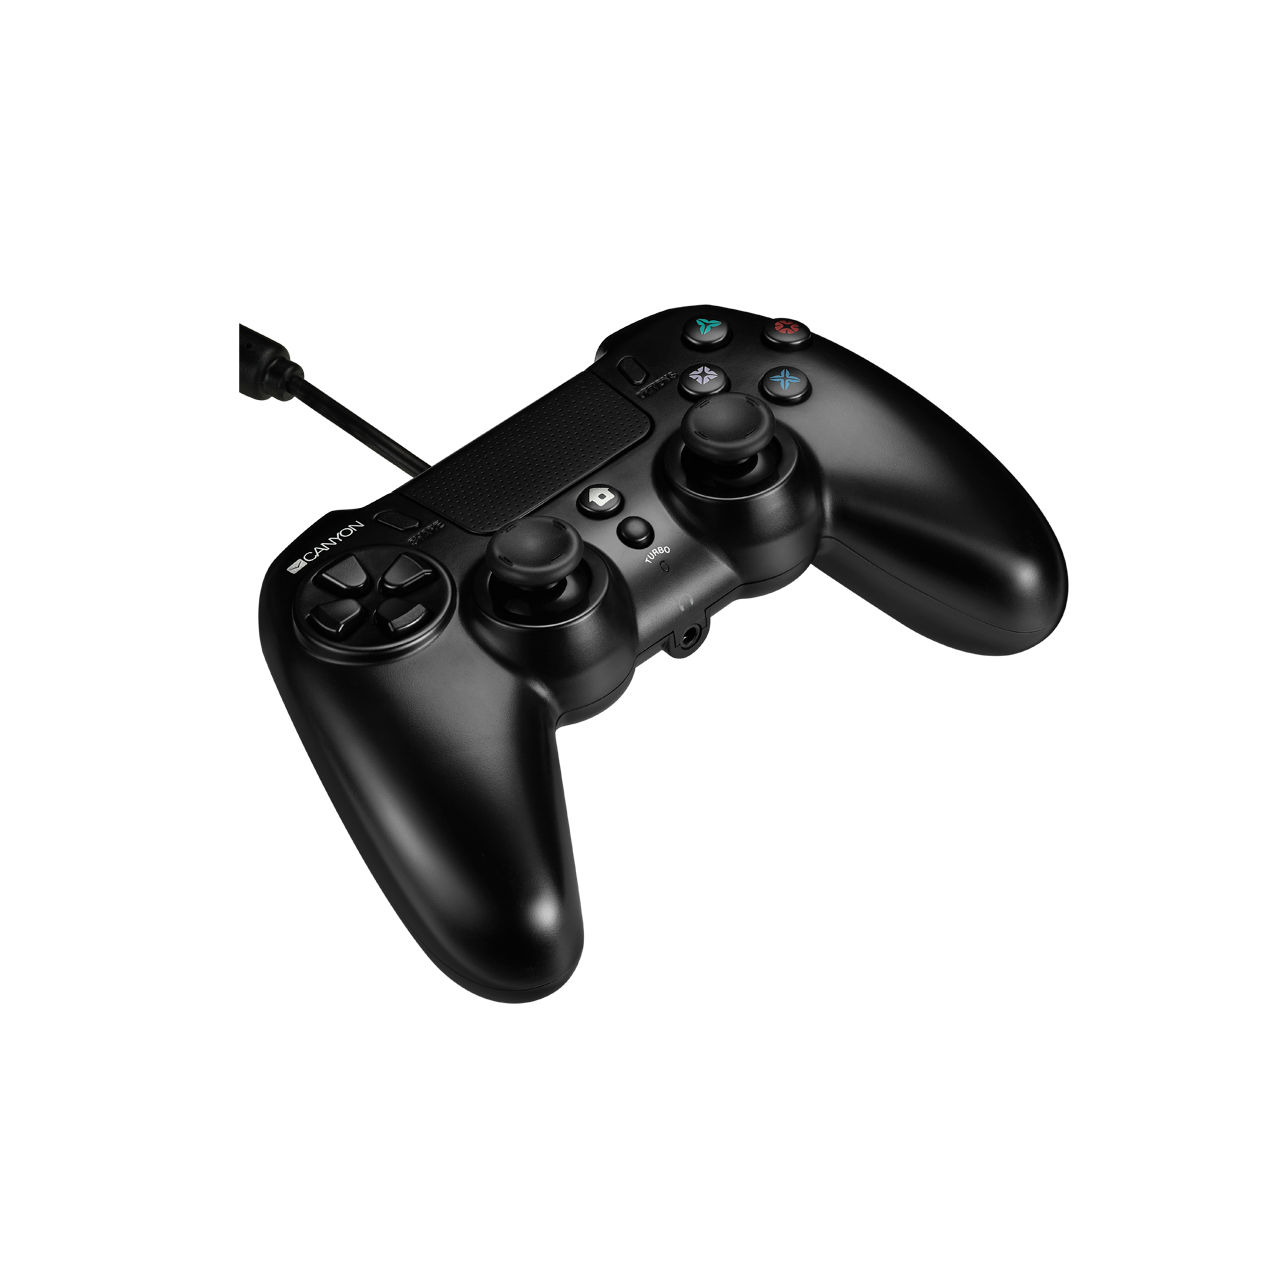 Wired Gamepad With Touchpad For PS4 (CND-GP5) - Canyon